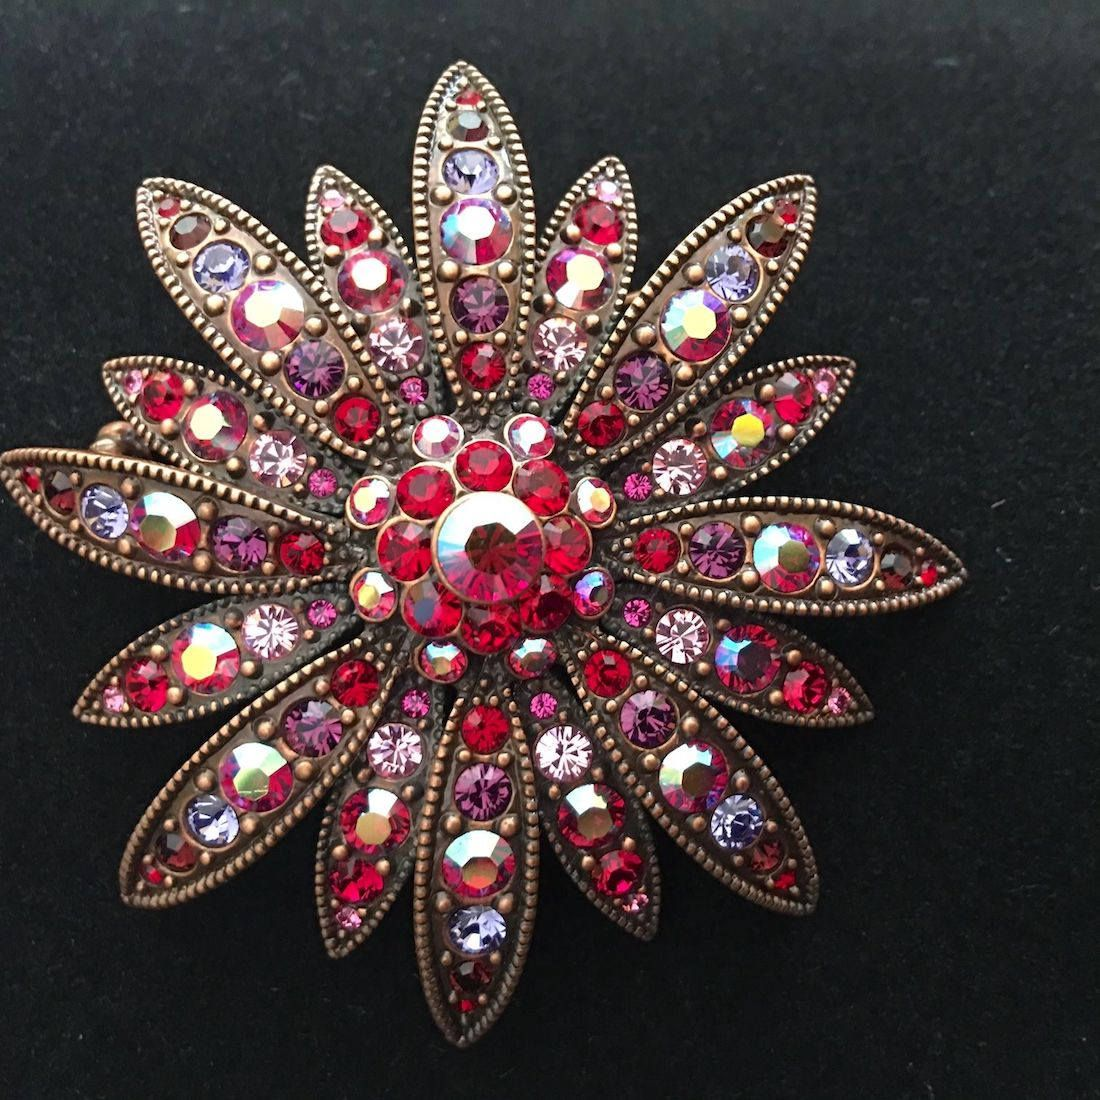 3a541fb13 Vintage Joan Rivers Signed Flower Brooch Pin Red Pink Aurora Borealis  Crystalized Swarovski Crystals 2 1/4